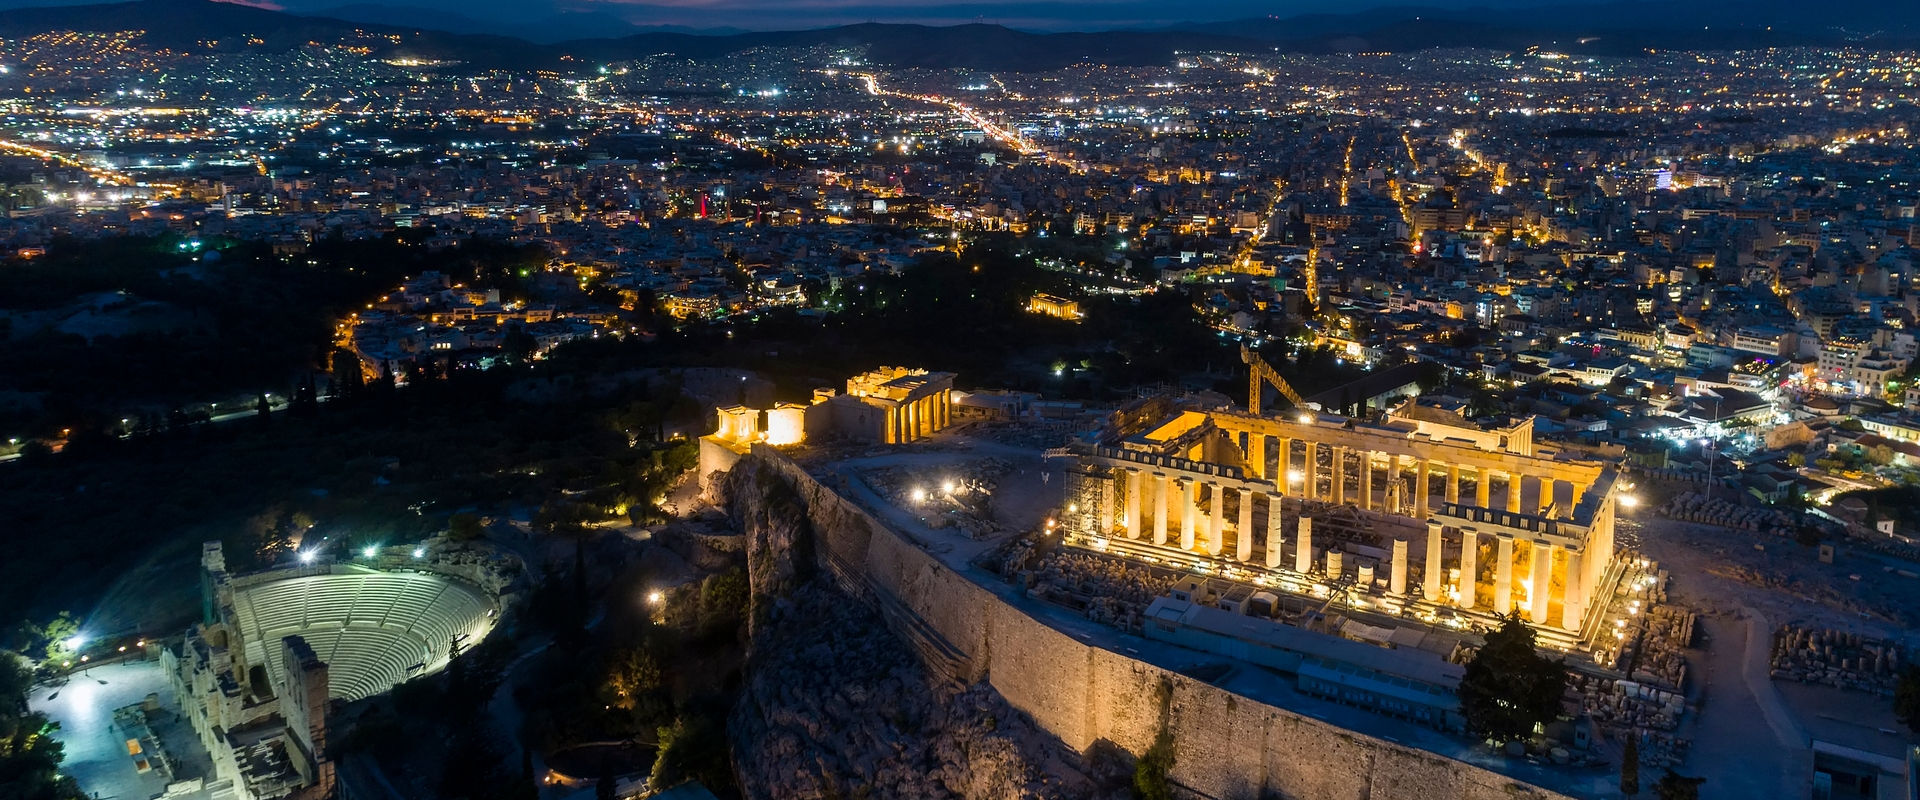 Aerial-view-of-Parthenon-and-Acropolis-in-Athens